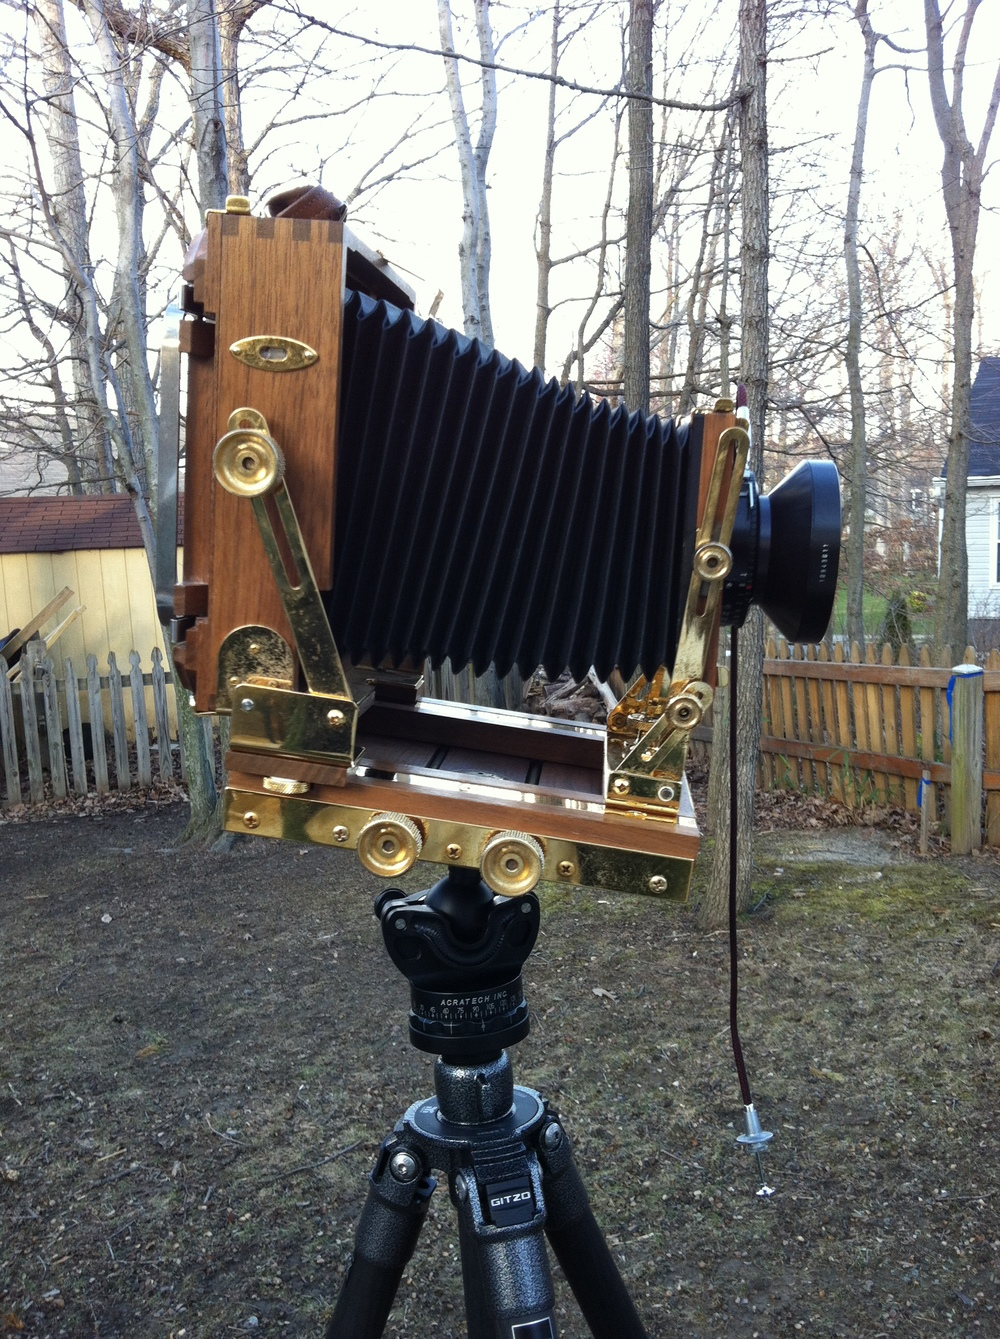 My large format Zone VI camera accepts 4x5 inch sheet film